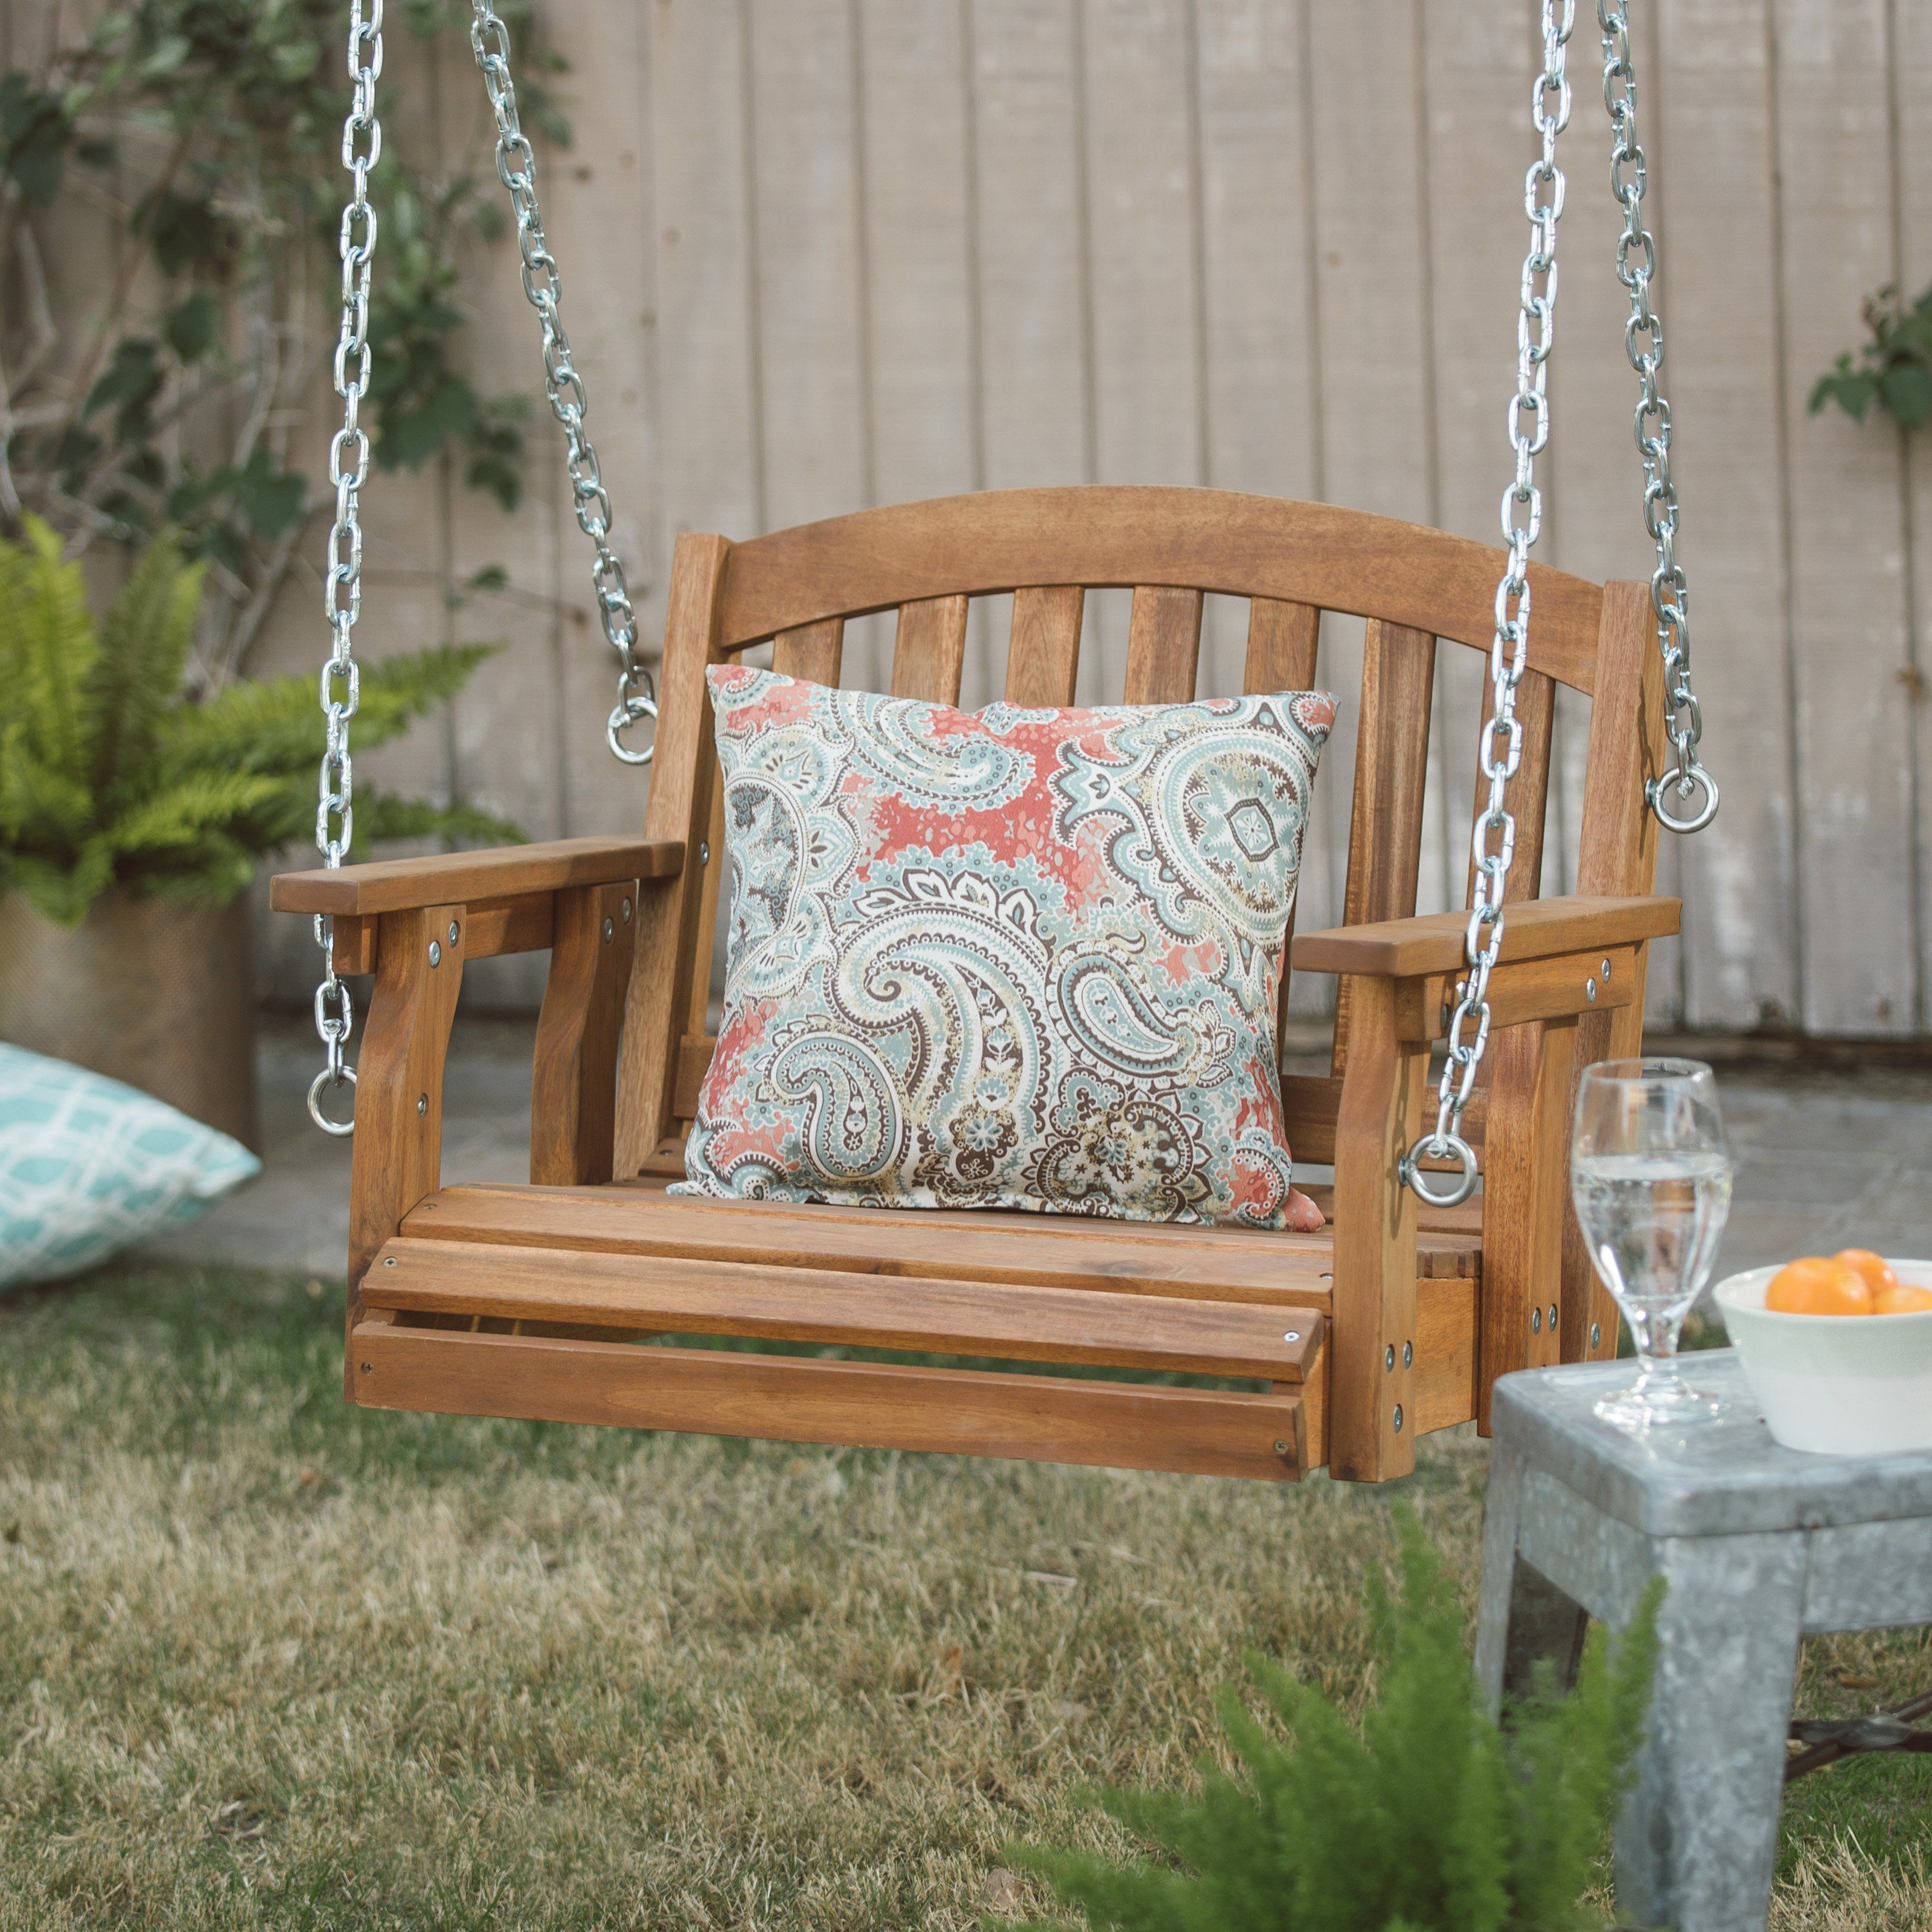 Marrakech Swing Chair Unique Balcony Swing Chair Decorating Ideas